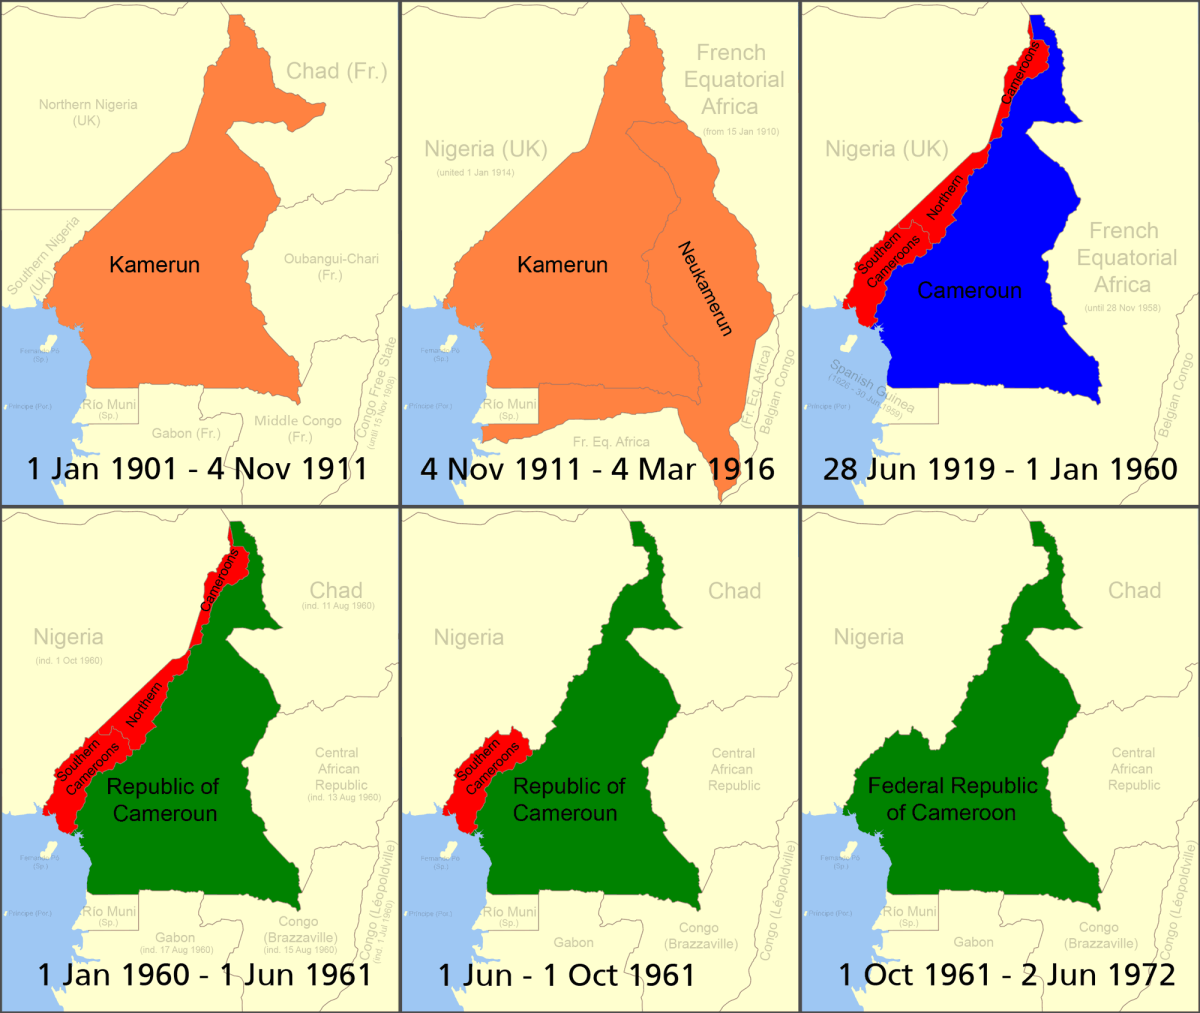 Imagining a Bilingual Nation: A Study of Cameroon's Independence and Reunification at its Fiftieth Anniversary